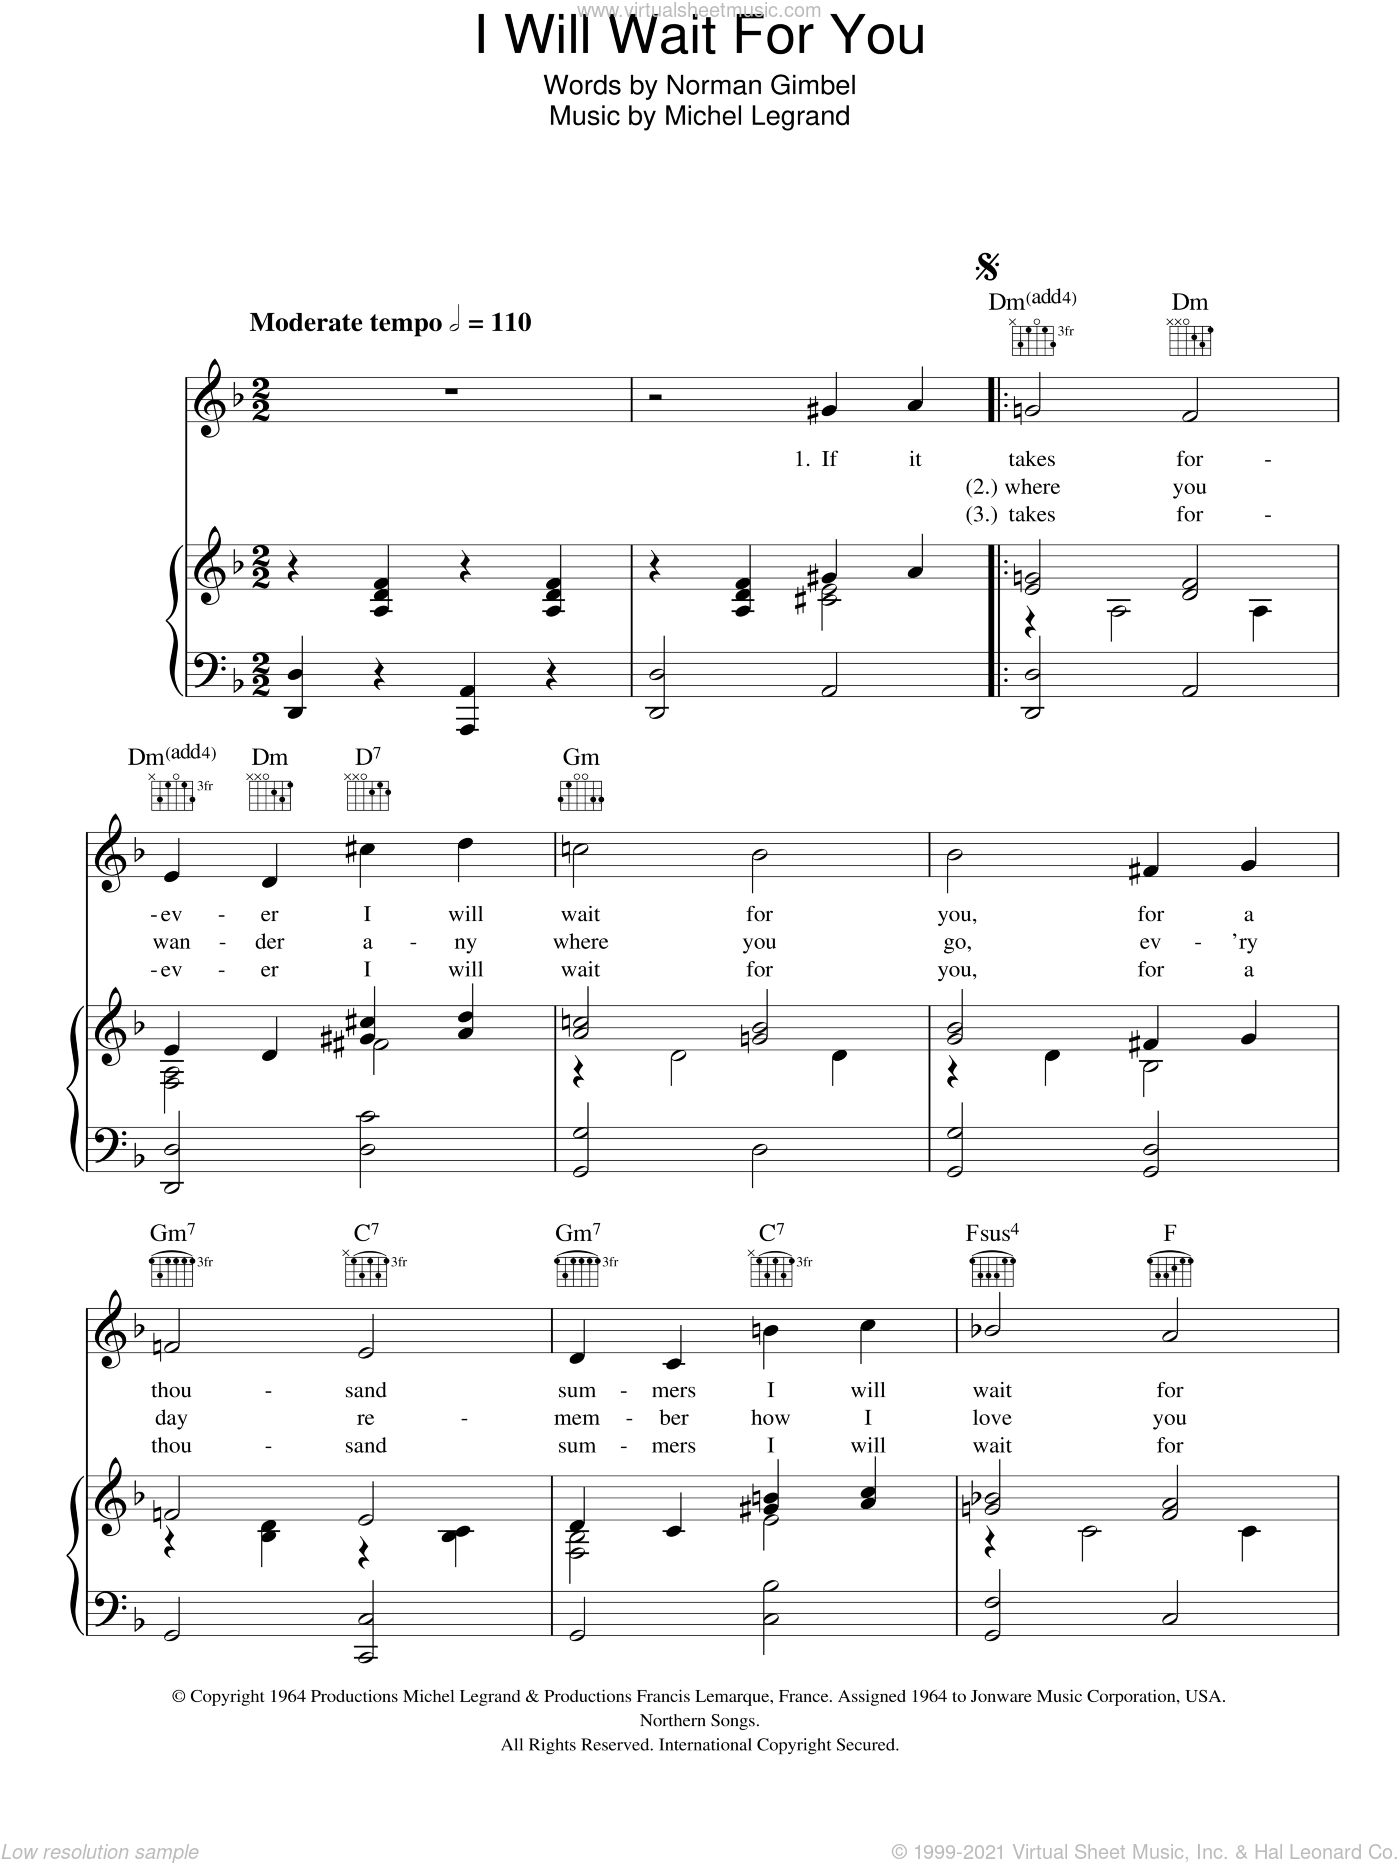 I Will Wait For You sheet music for voice, piano or guitar by Michel LeGrand and Norman Gimbel, intermediate skill level